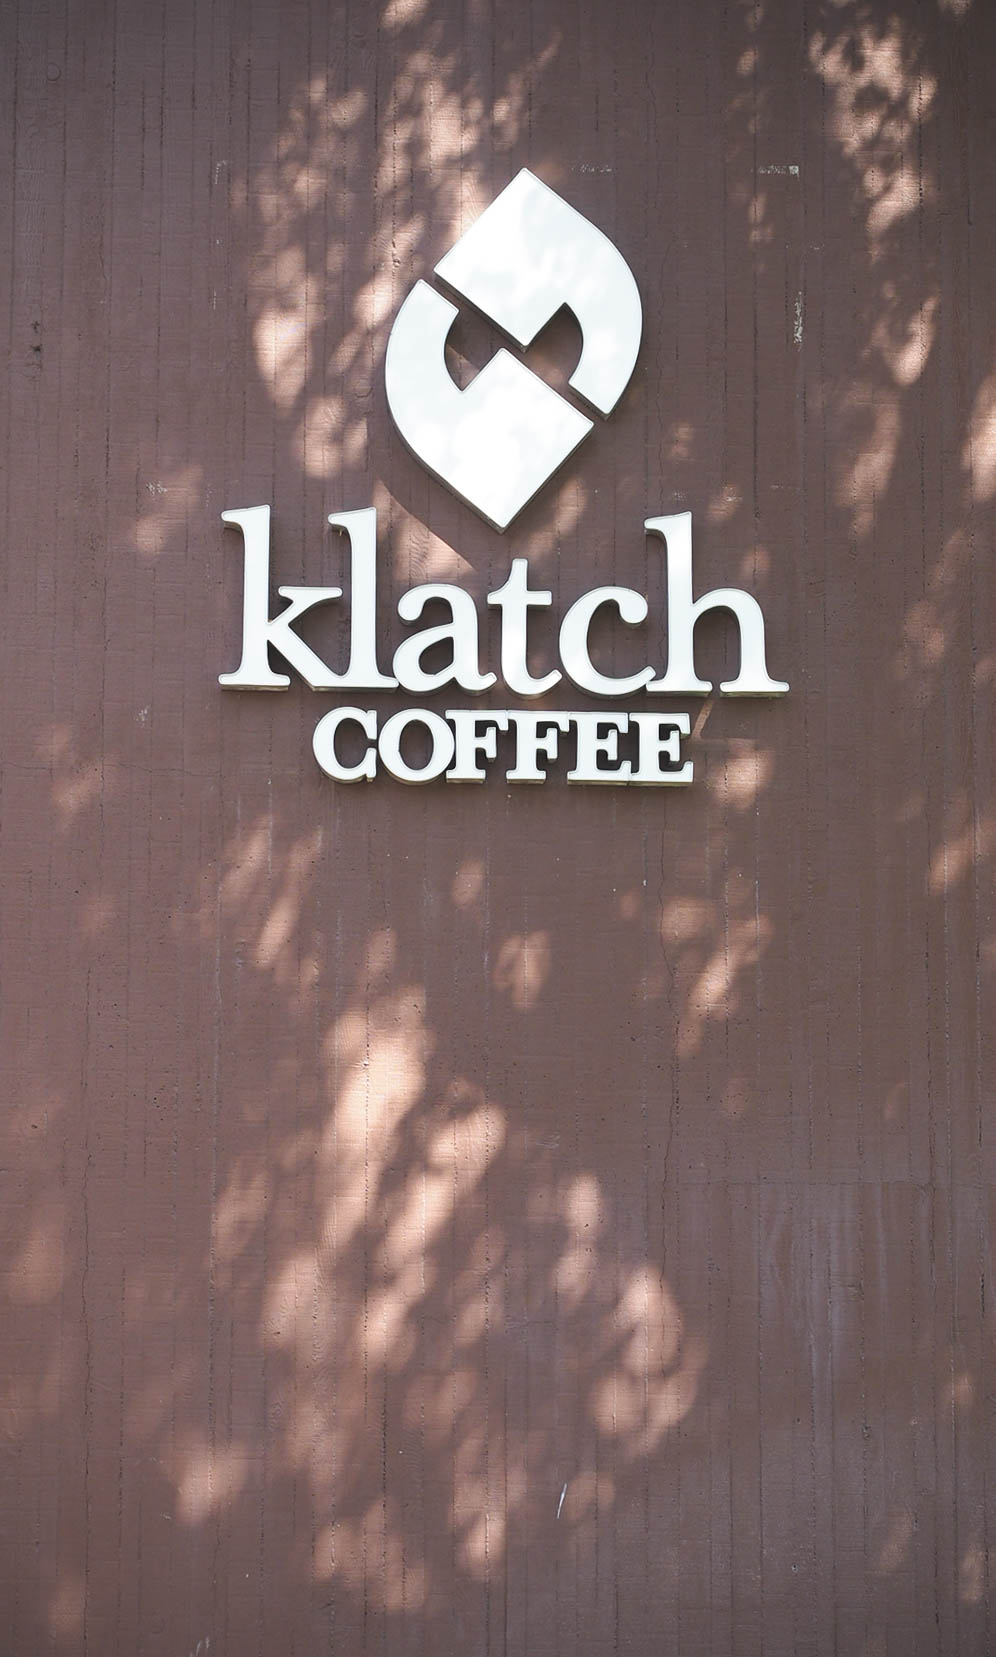 Klatch Coffee roasts custom blend for Tekton Hospitality's HD Show Ensamble